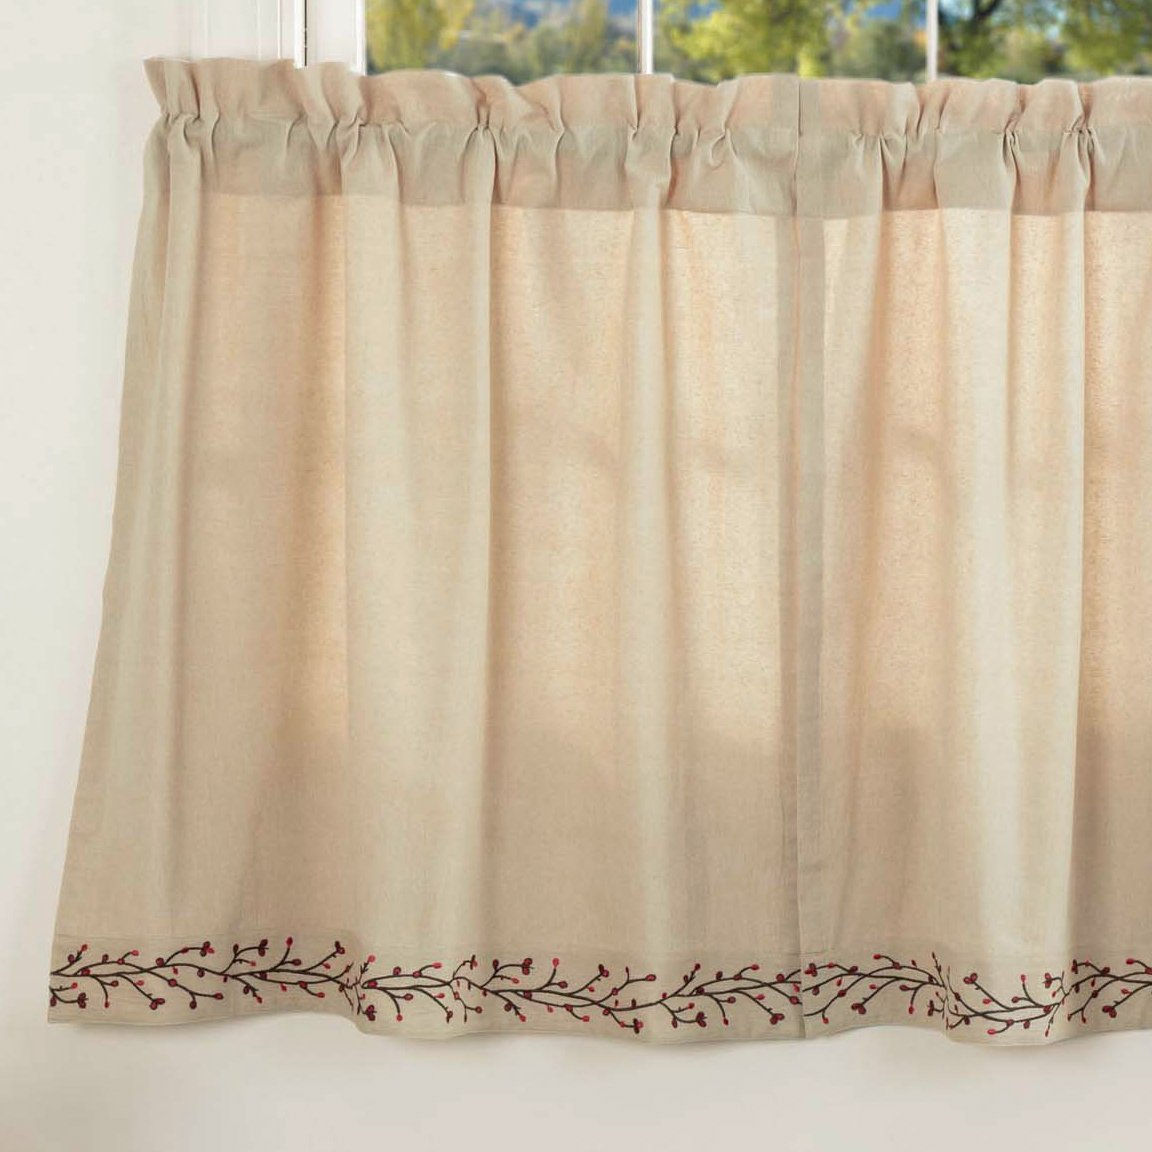 Twig & Berry Vine Tier Curtains, 36'' Long, Beige w/Embroidered Berries, Farmhouse Country Primitive Café Curtains